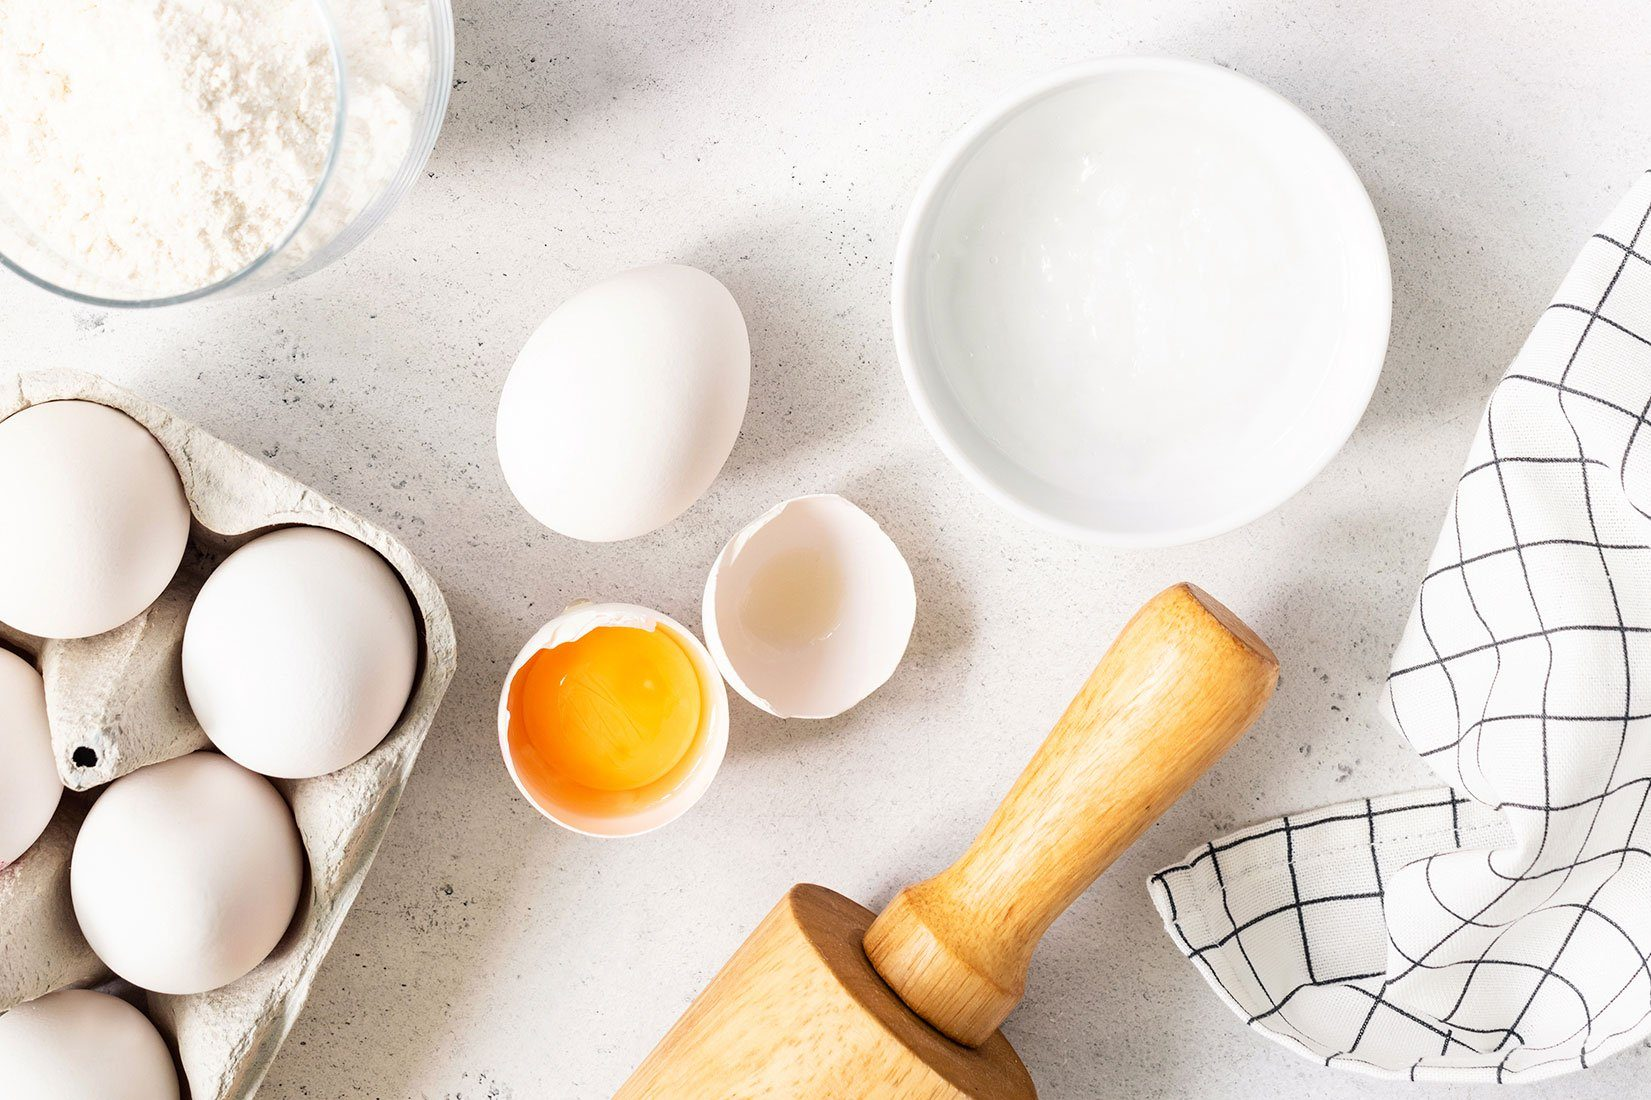 overhead view of eggs, rolling pin, baking soda, bowl on a white counter top